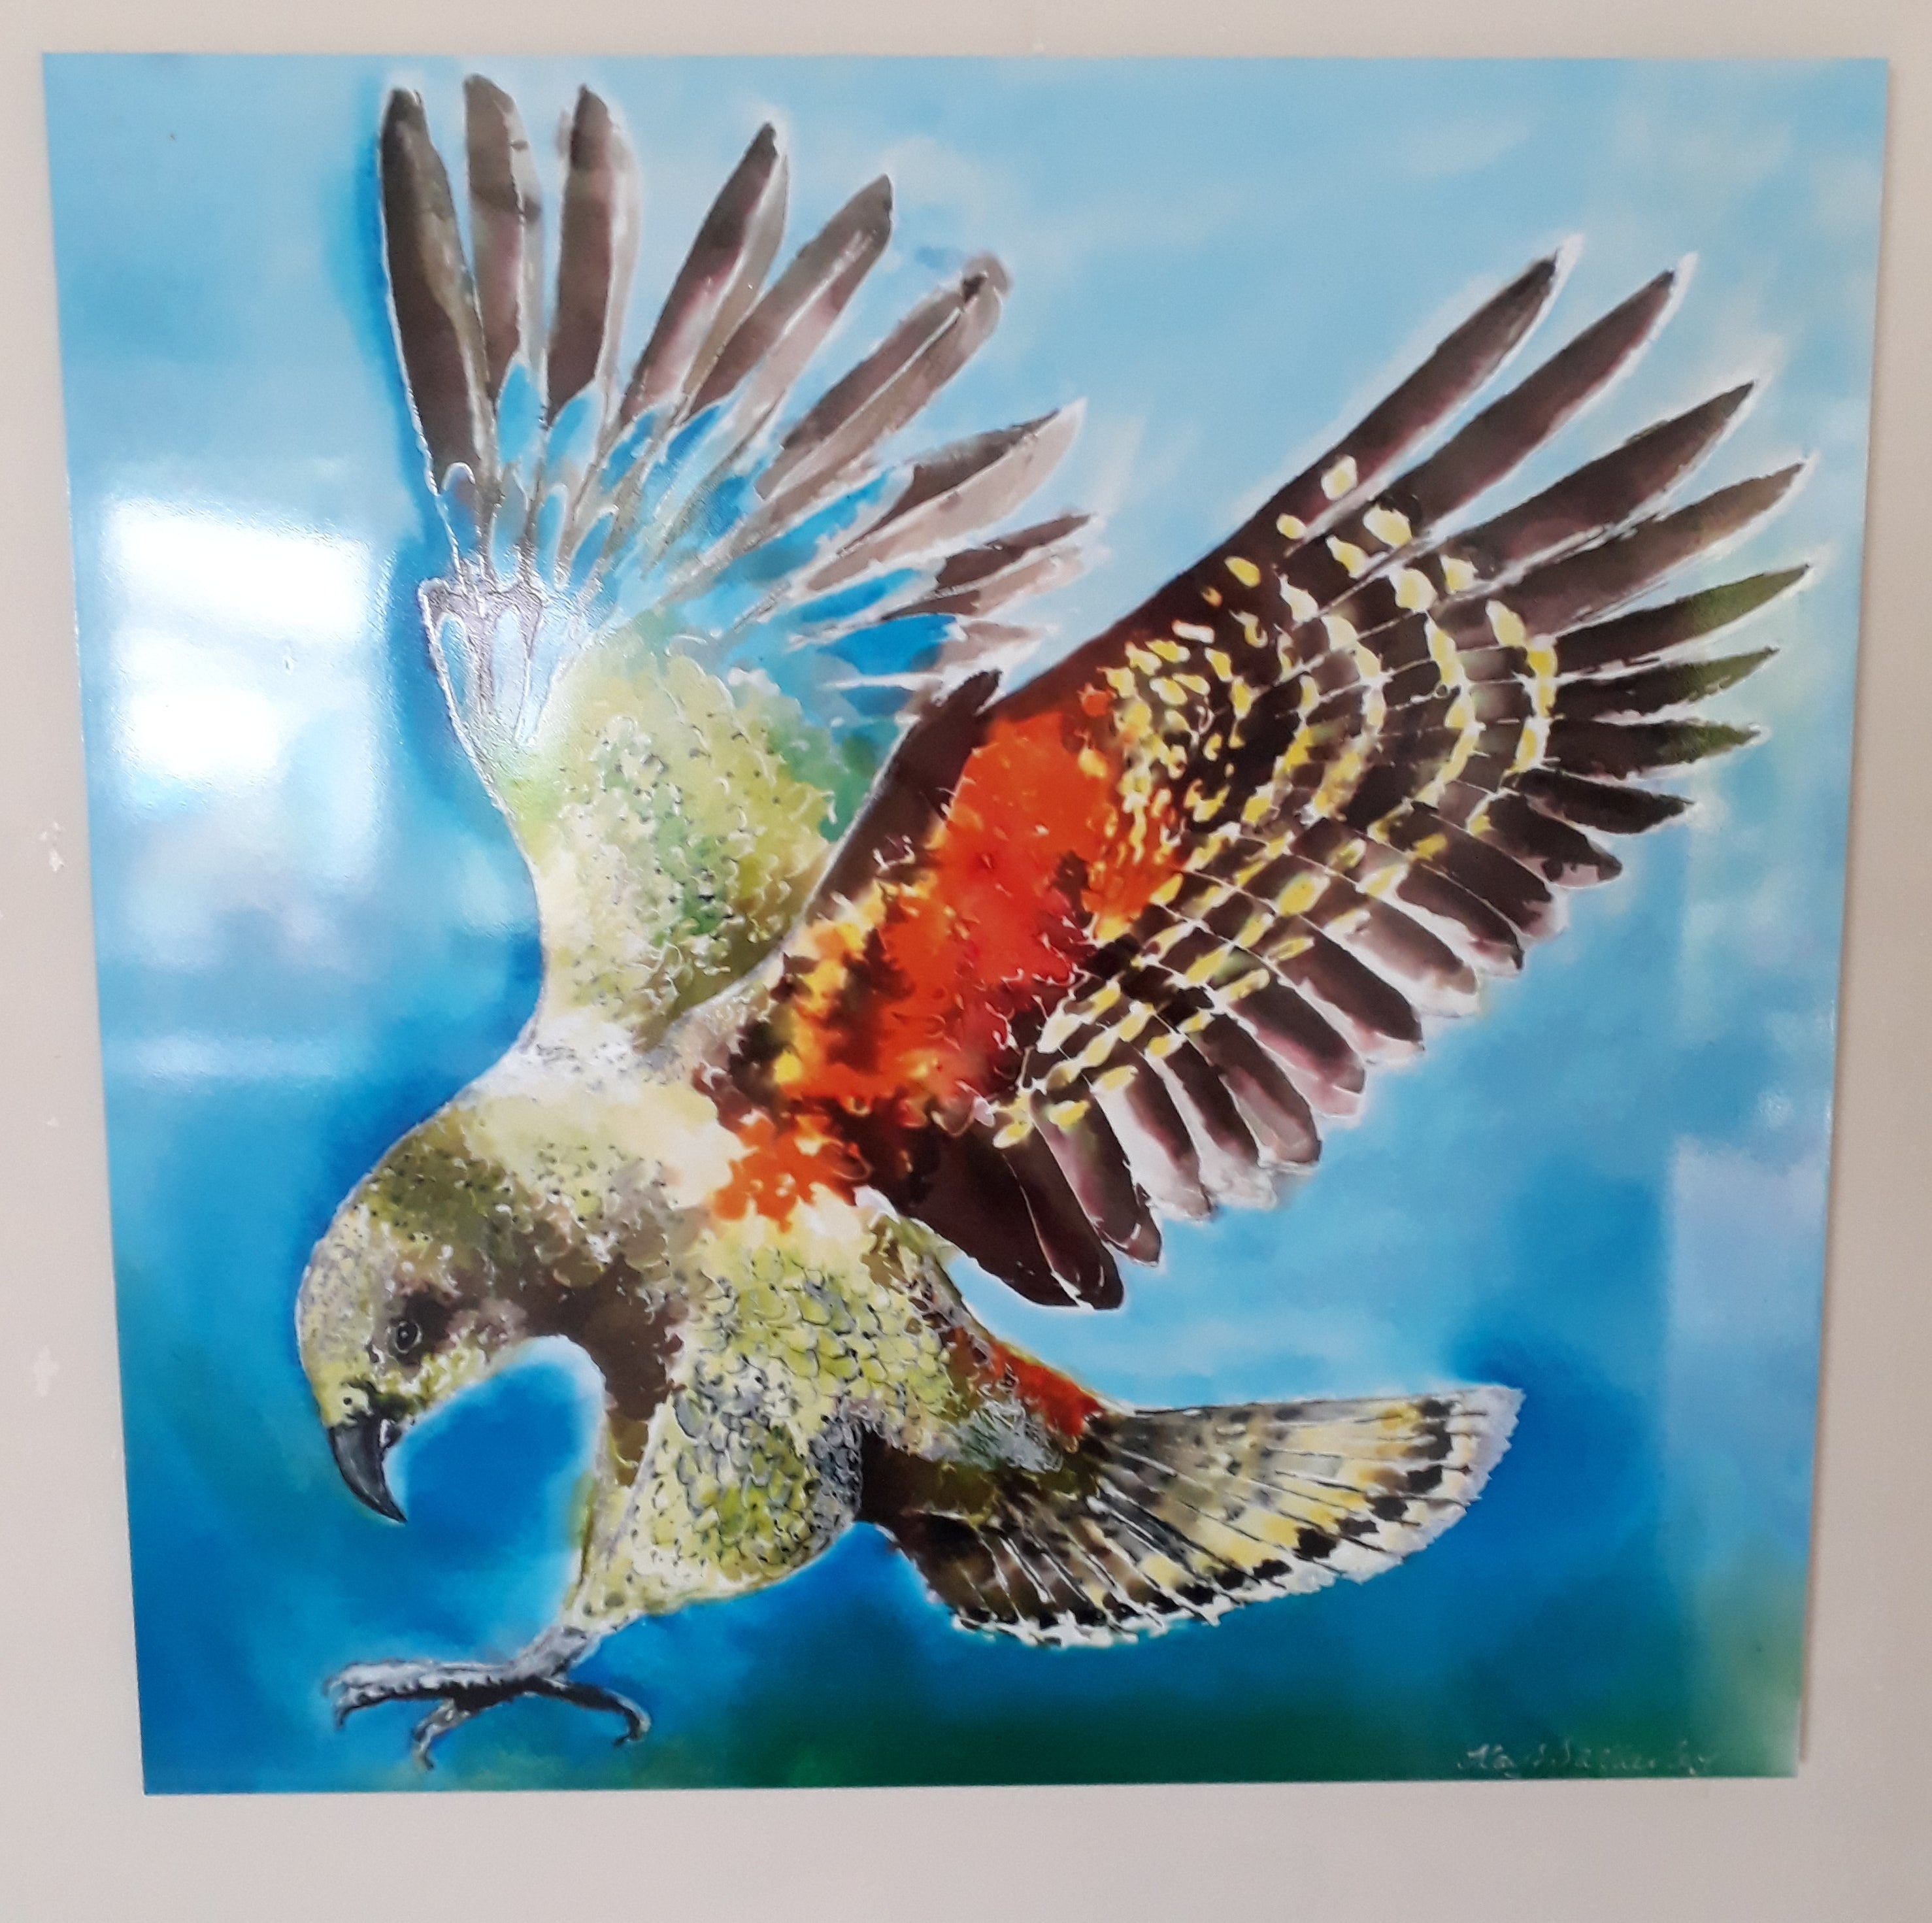 Kea Bird, NZ Alpine Parrot - Square Art Panel